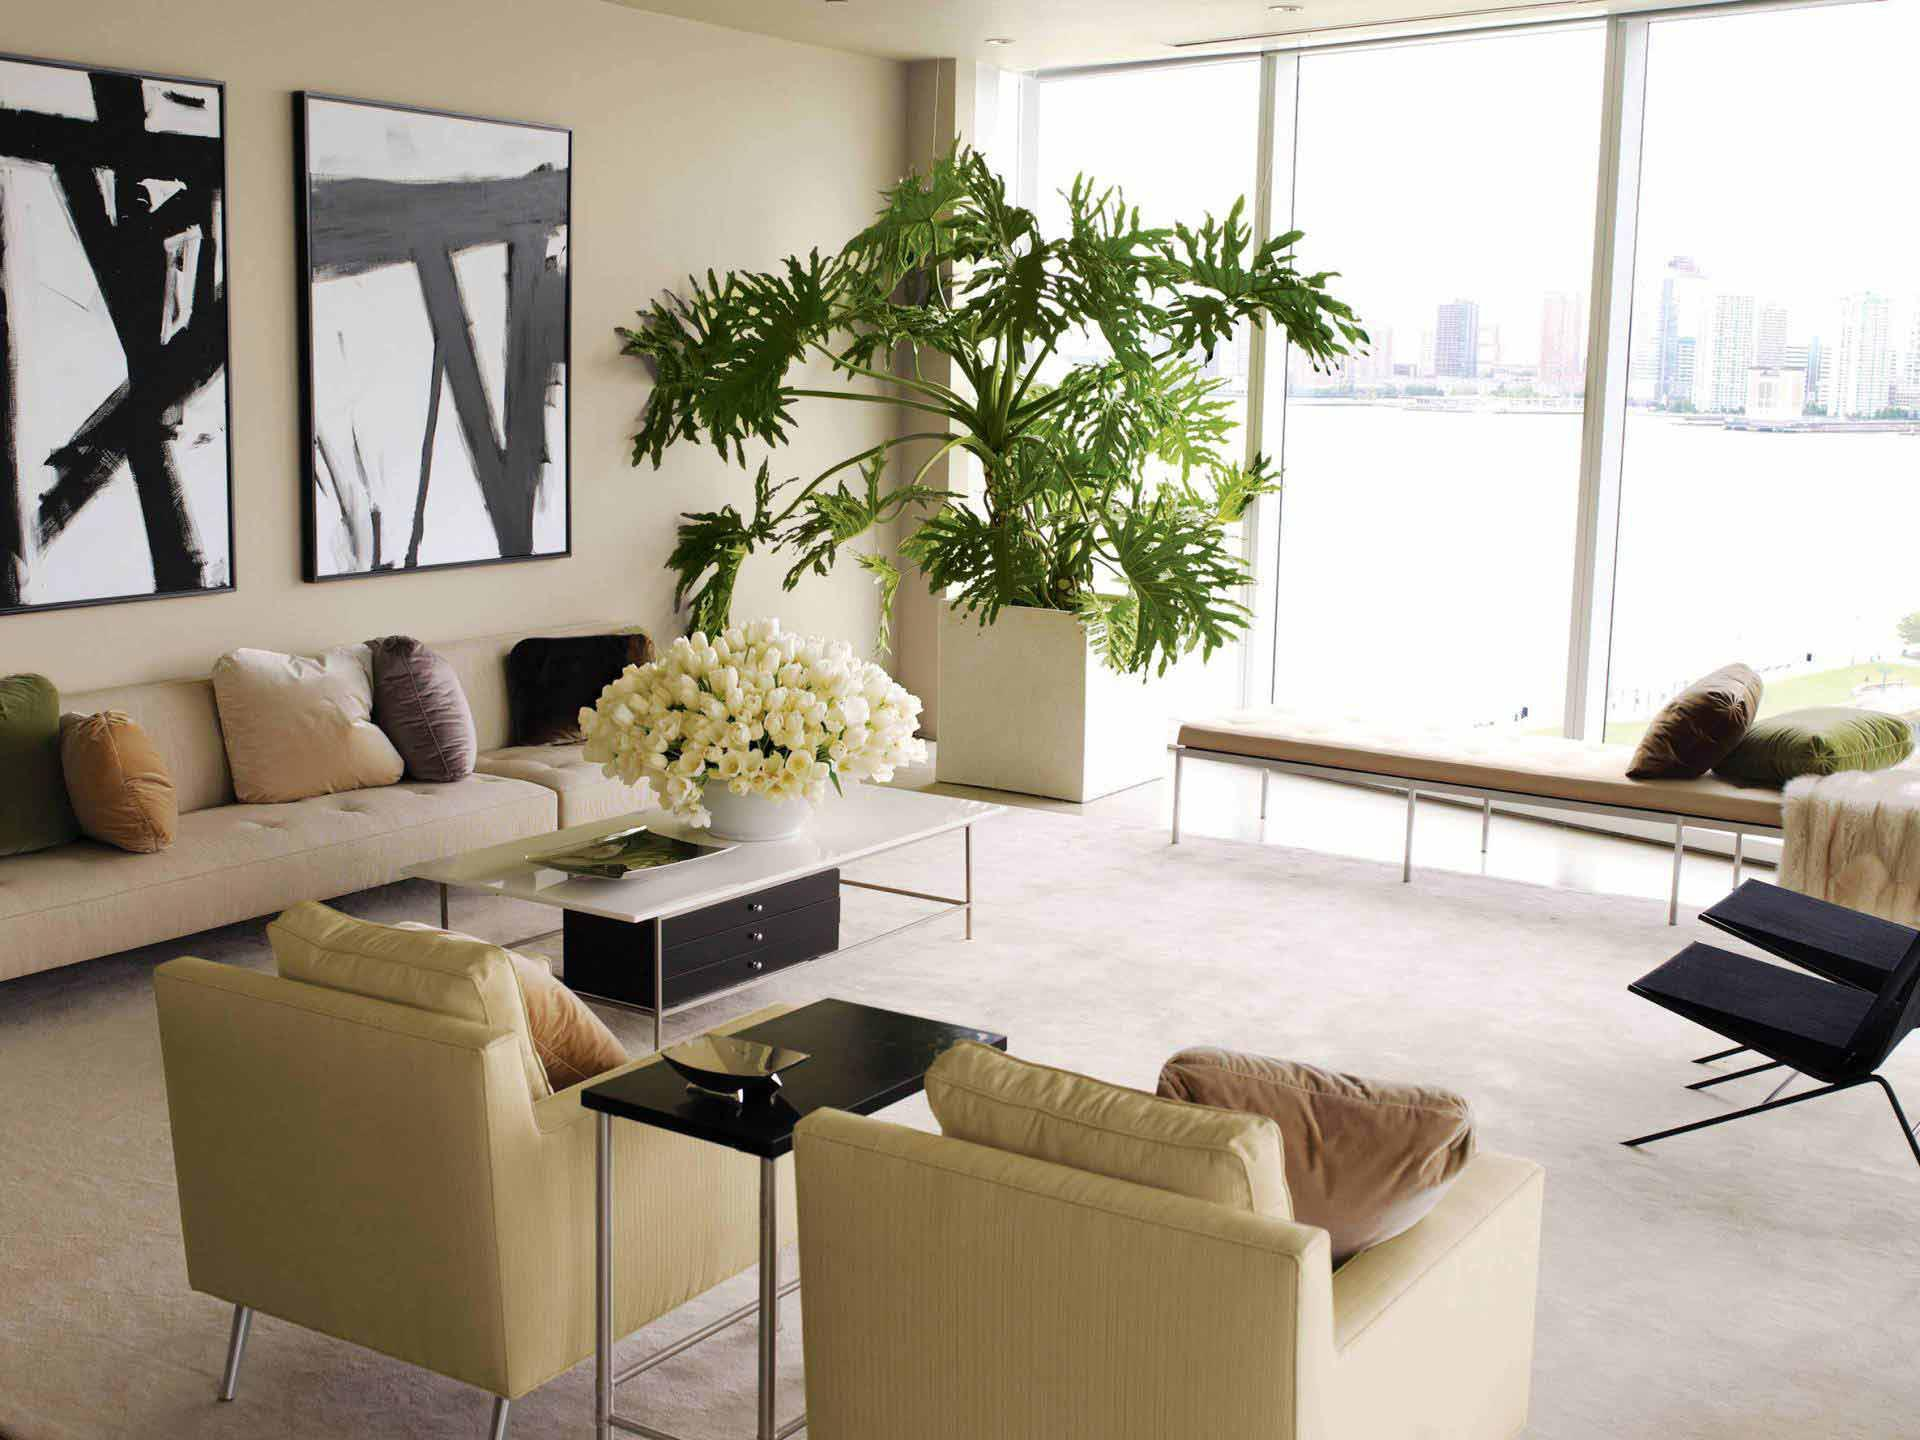 Decorating our homes with plants interior design explained living room plants geotapseo Gallery